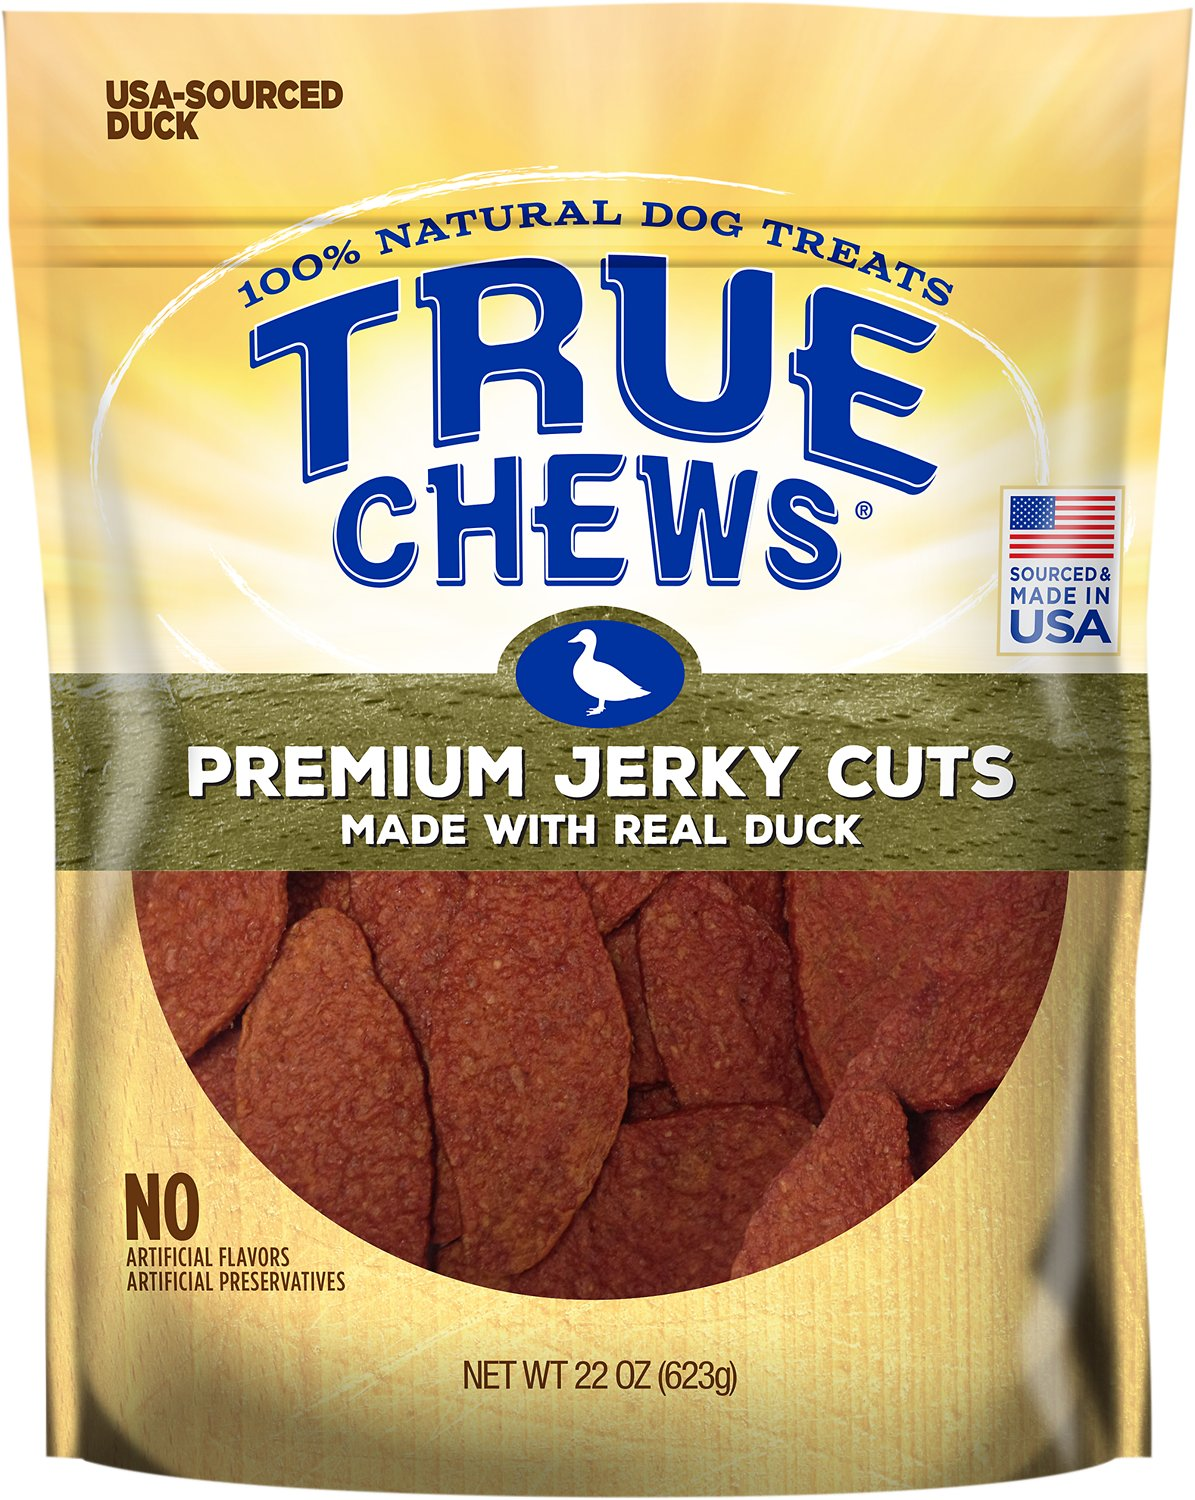 True Chews Premium Jerky Cuts with Real Duck Dog Treats Image